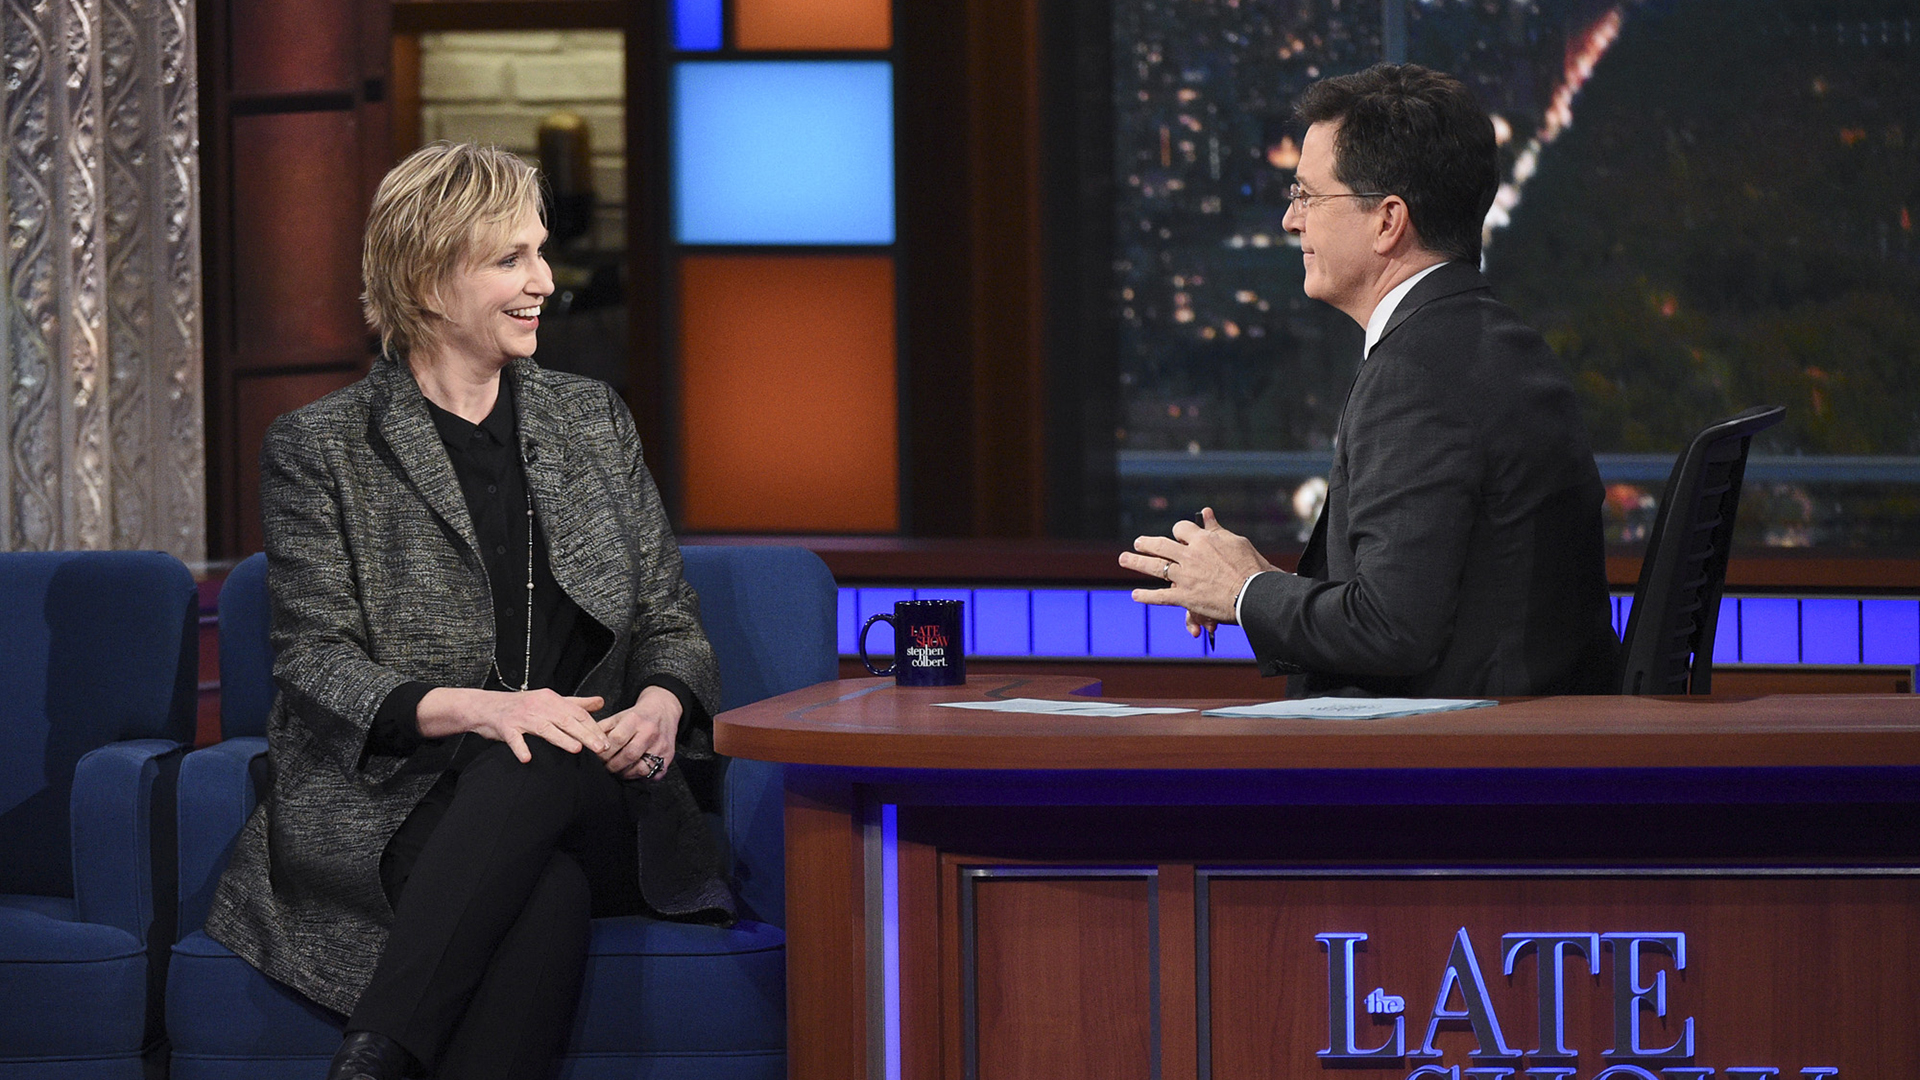 Jane Lynch and Stephen Colbert